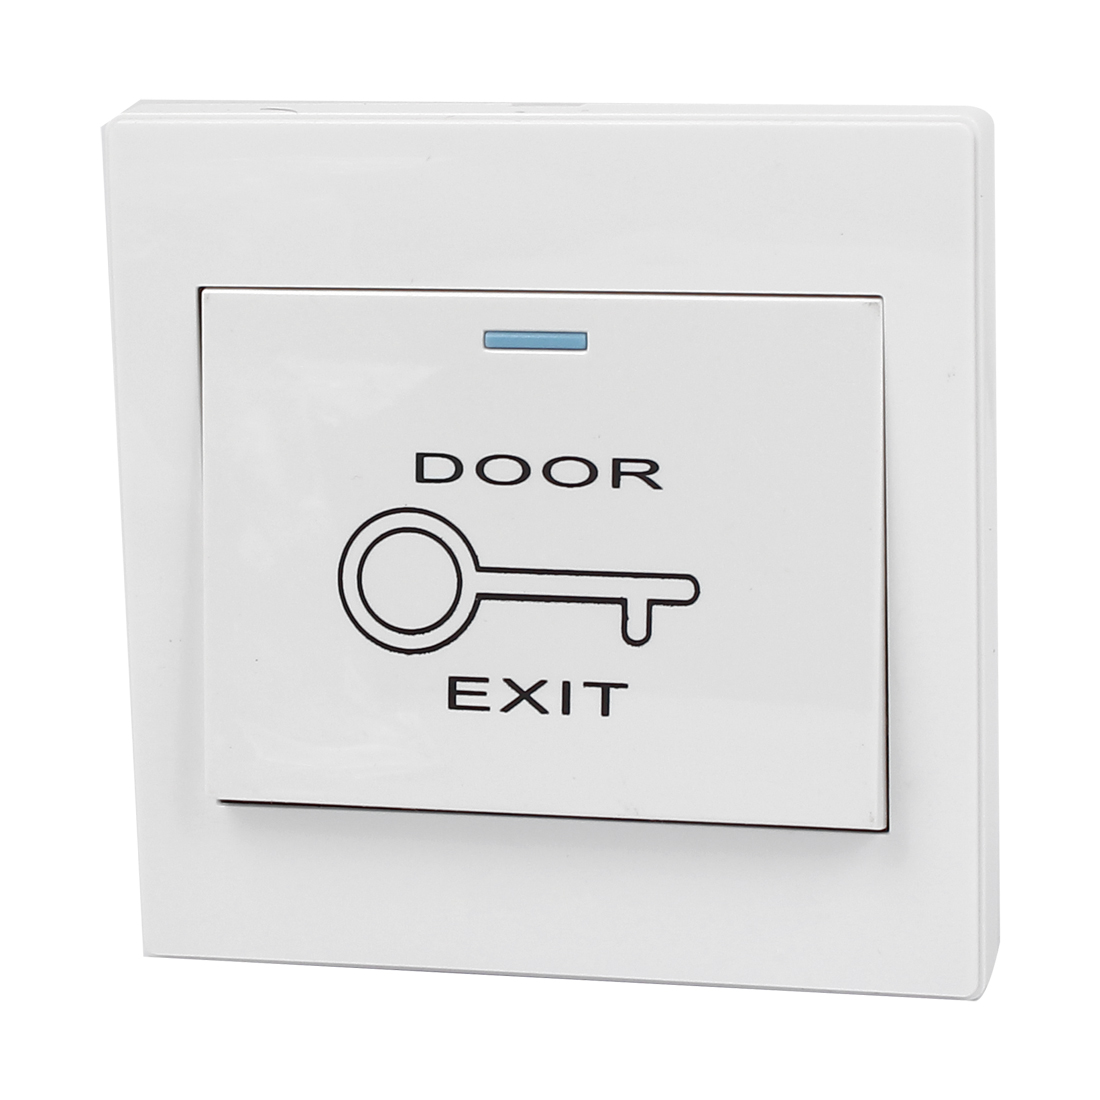 Exit Door Strike Push Release Button Switch Panel for Access Control